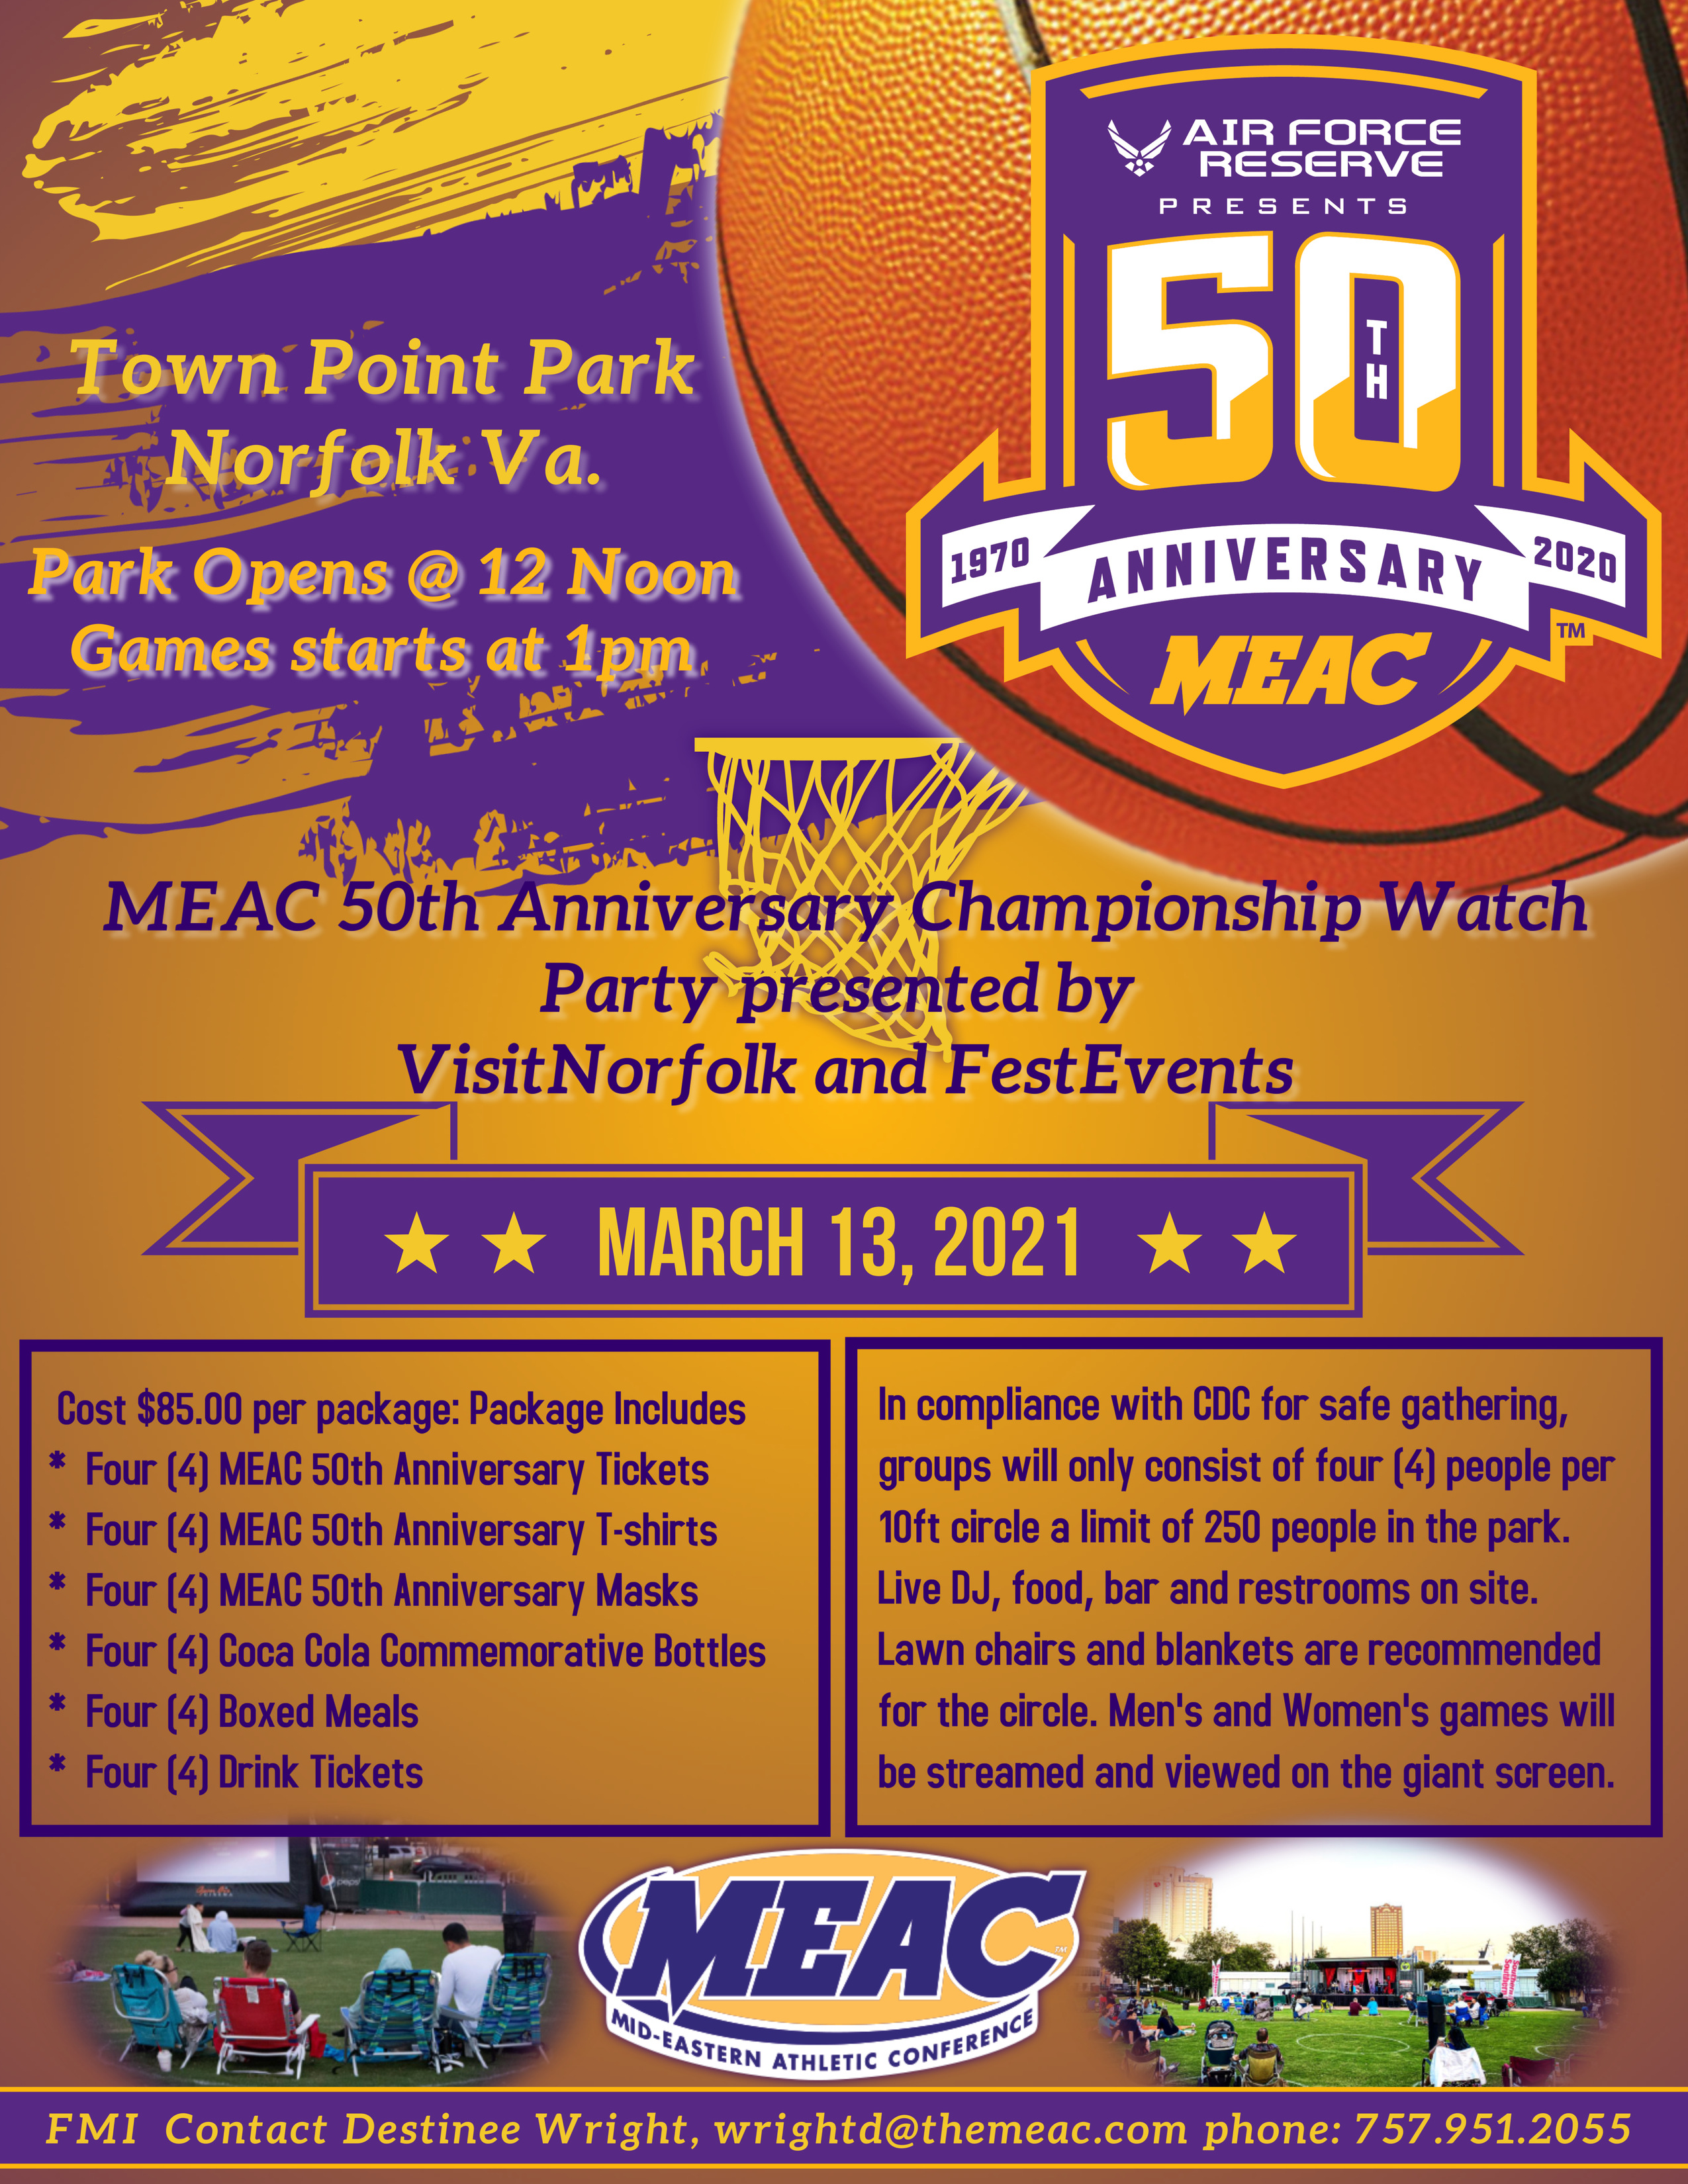 Copy of March Madness Basketball Flyer Templae (1).jpg